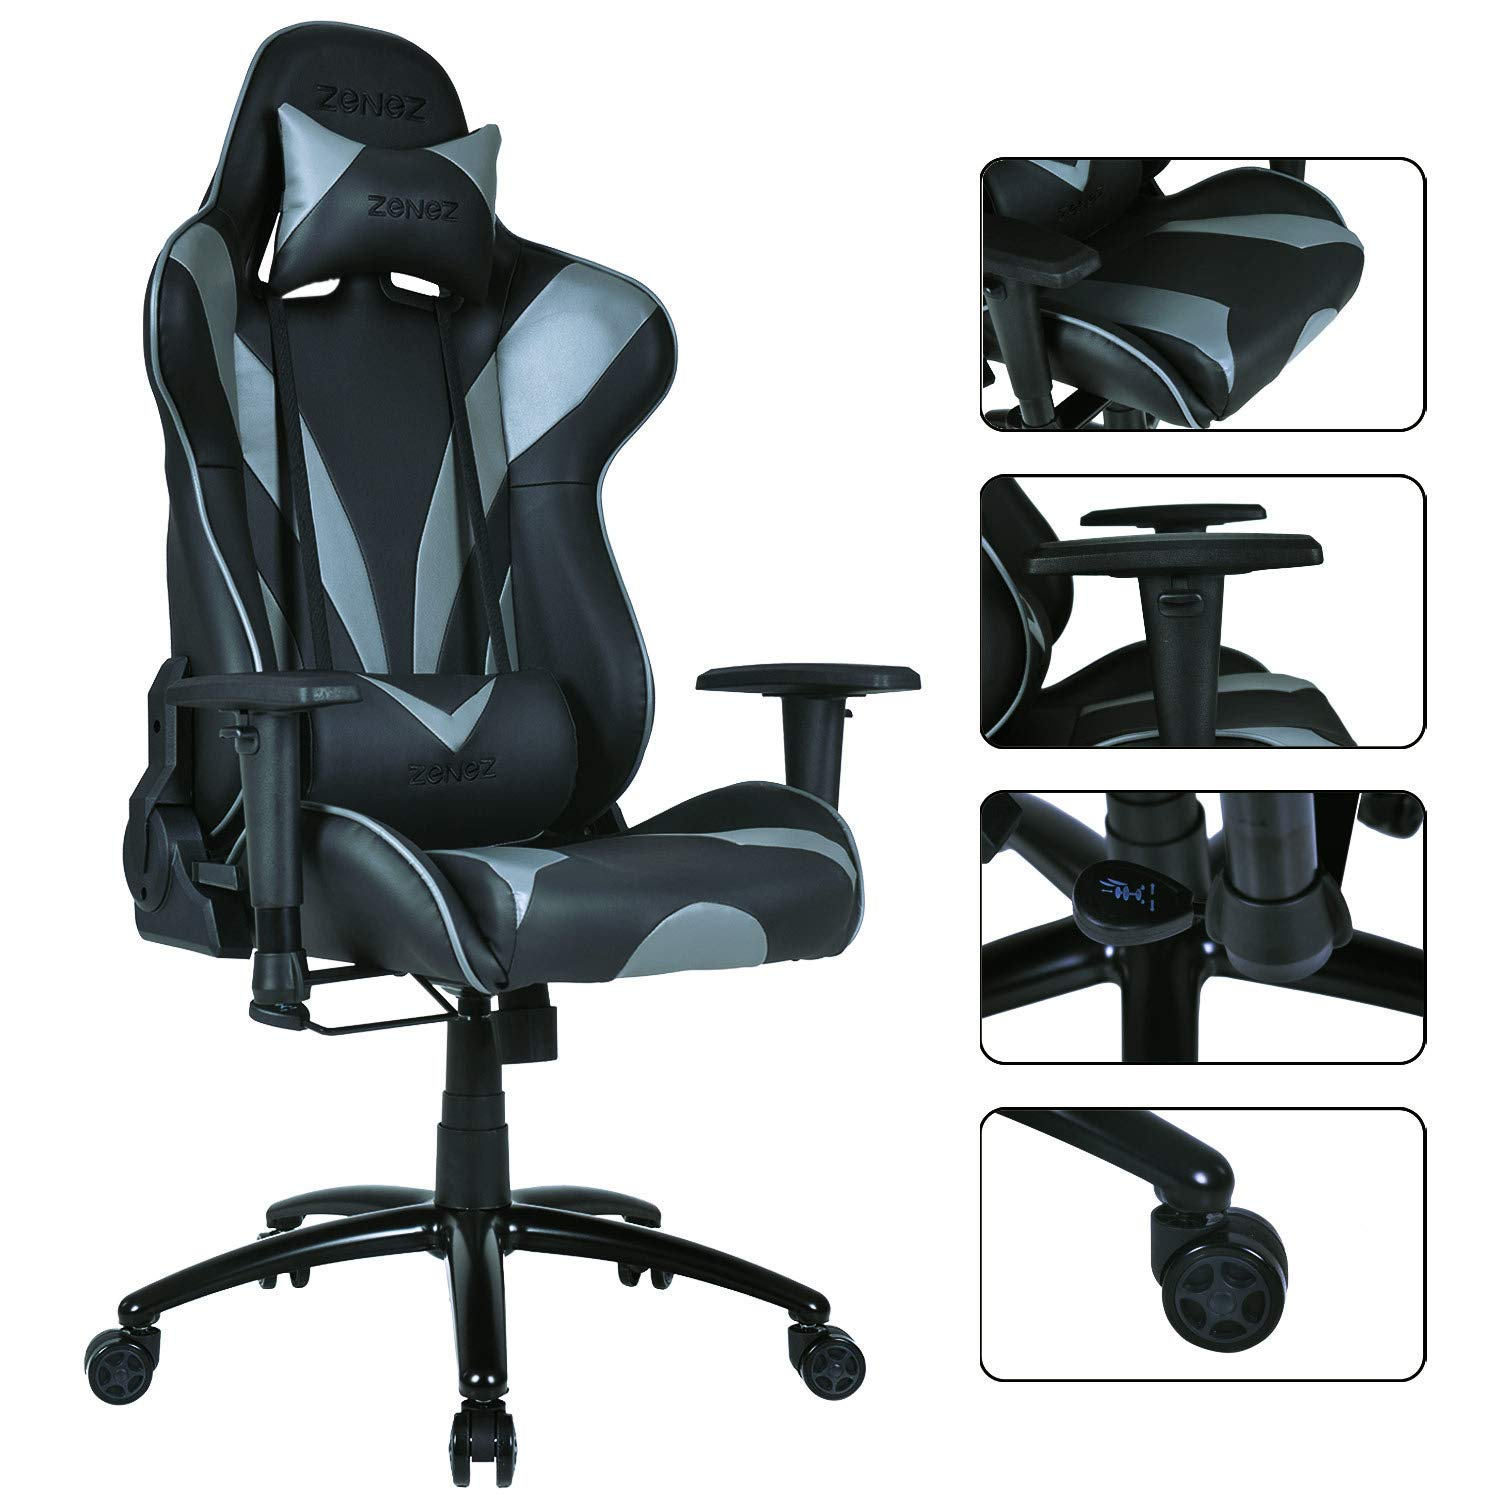 ZENEZ Gaming Chair Office Chair High Back Computer Chair Racing Ergonomic Backrest and Seat Height Adjustable Recliner Swivel Rocker with Headrest and Lumbar Pillow Large Size(Black)